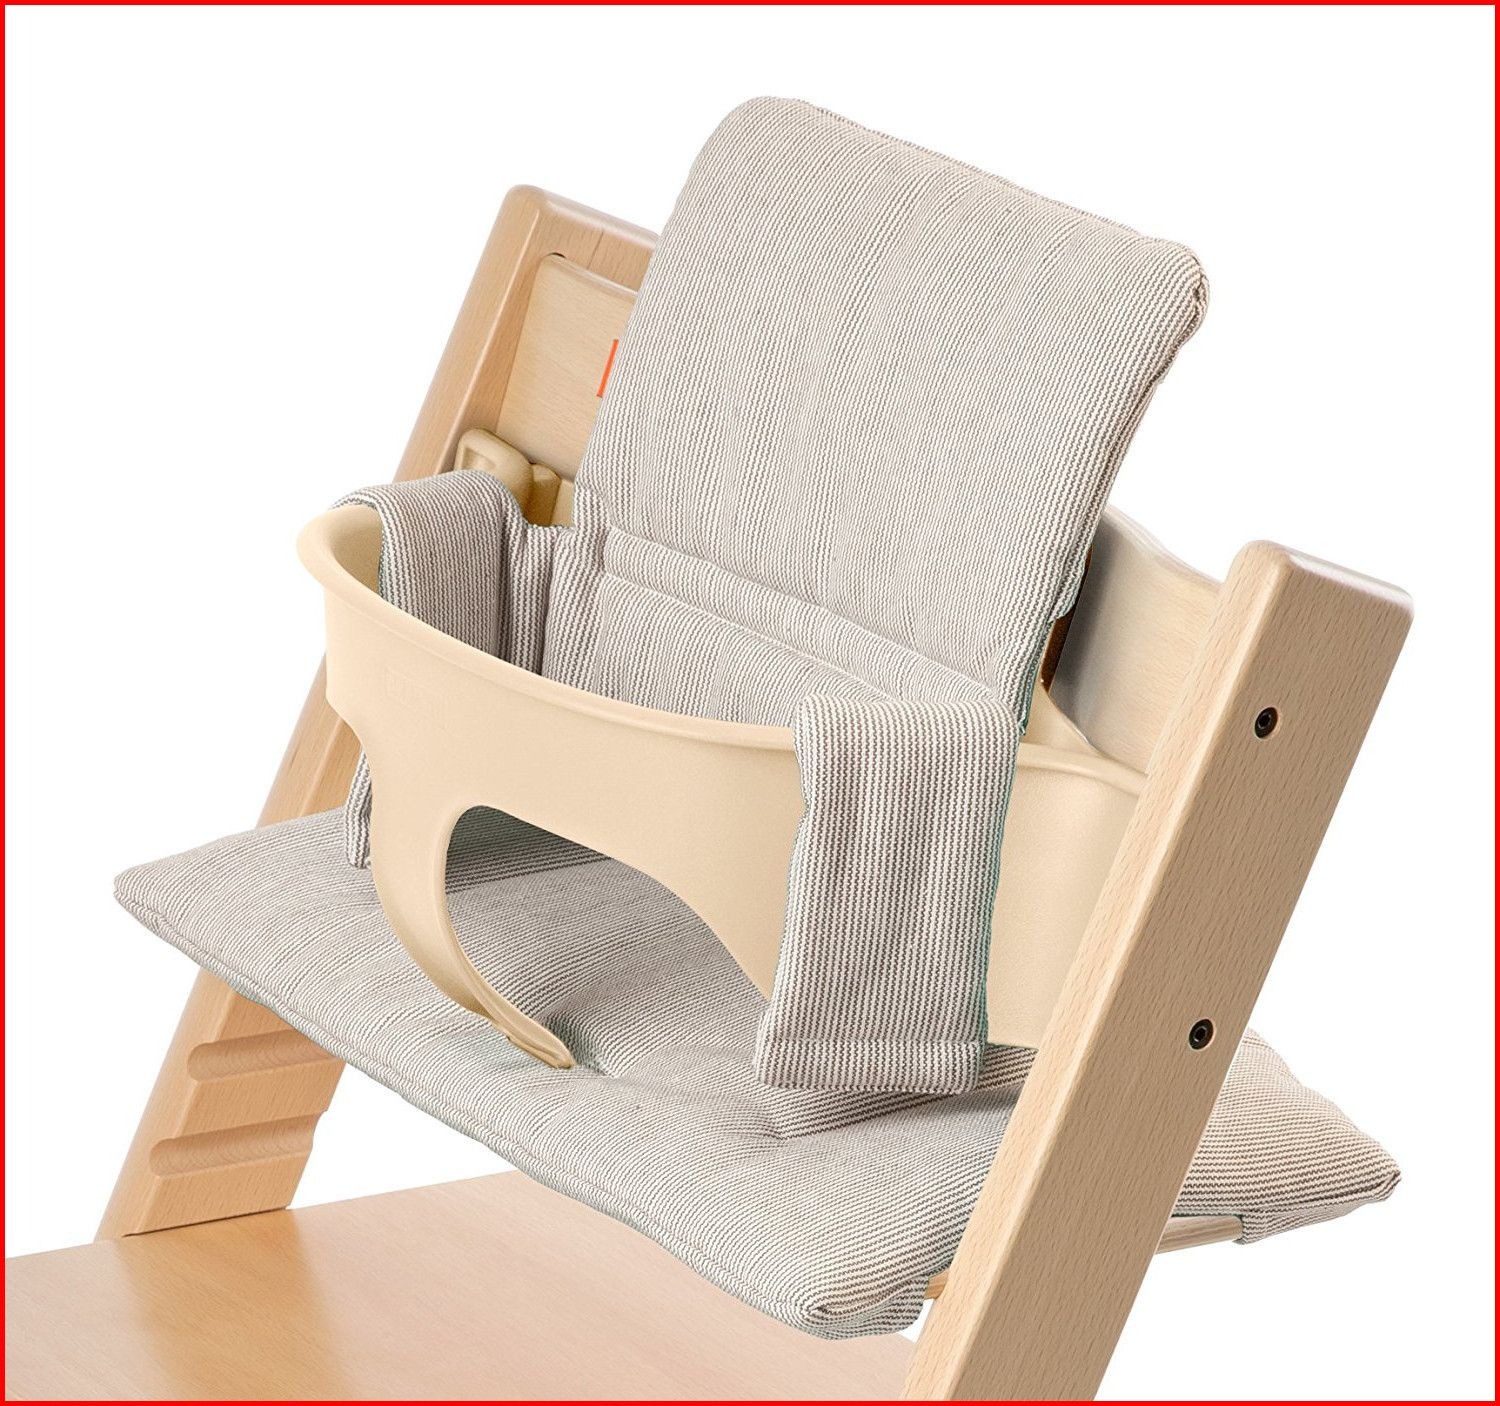 28 Impressionnant Chaise Tripp Trapp Soldes Recommandations